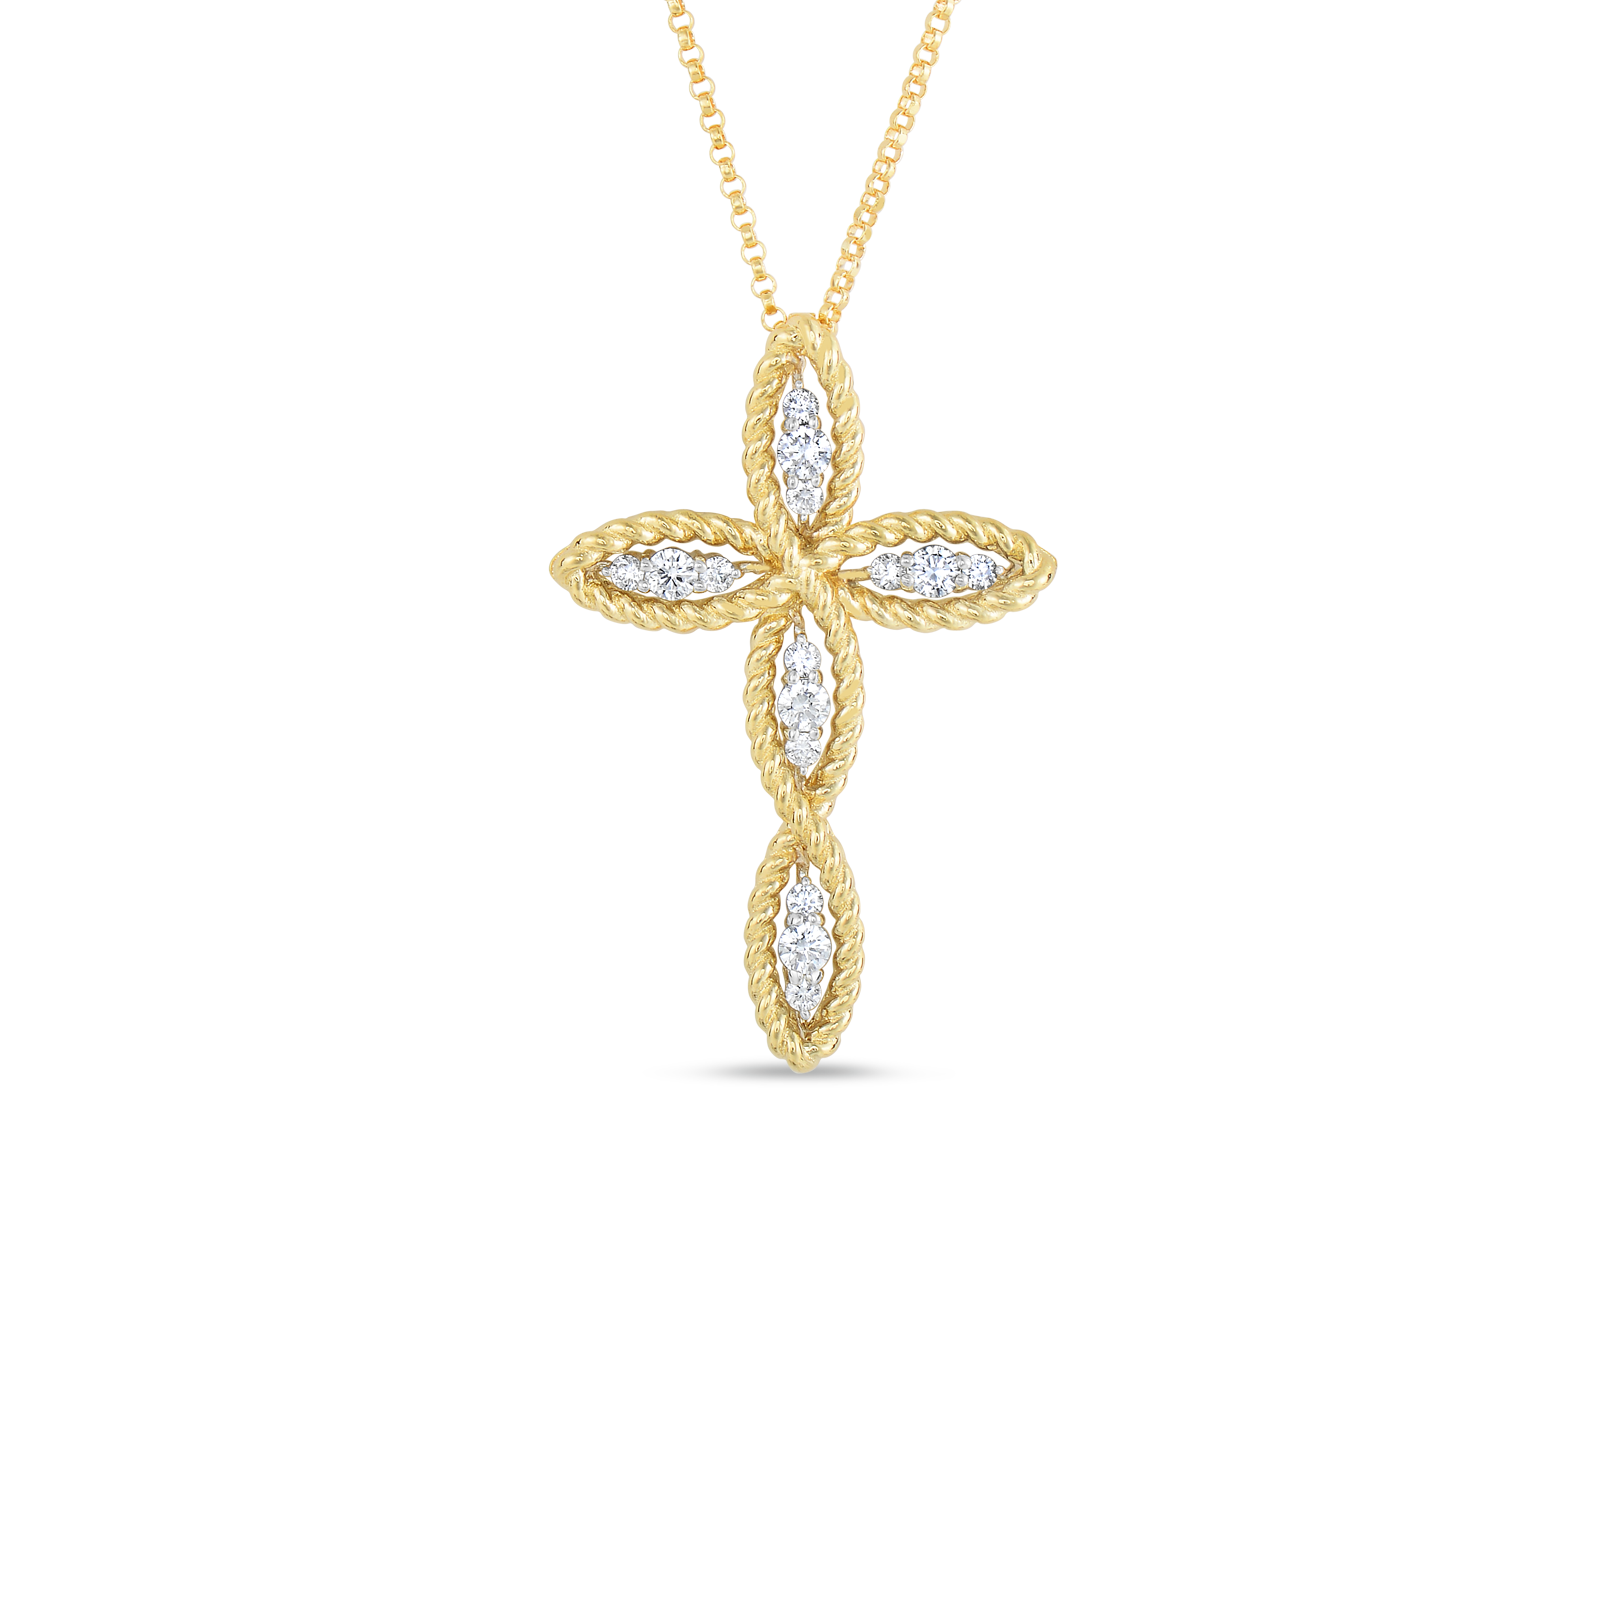 fe roberto gold rondel with princess diamond pendant products white coin jewelry santa diamonds